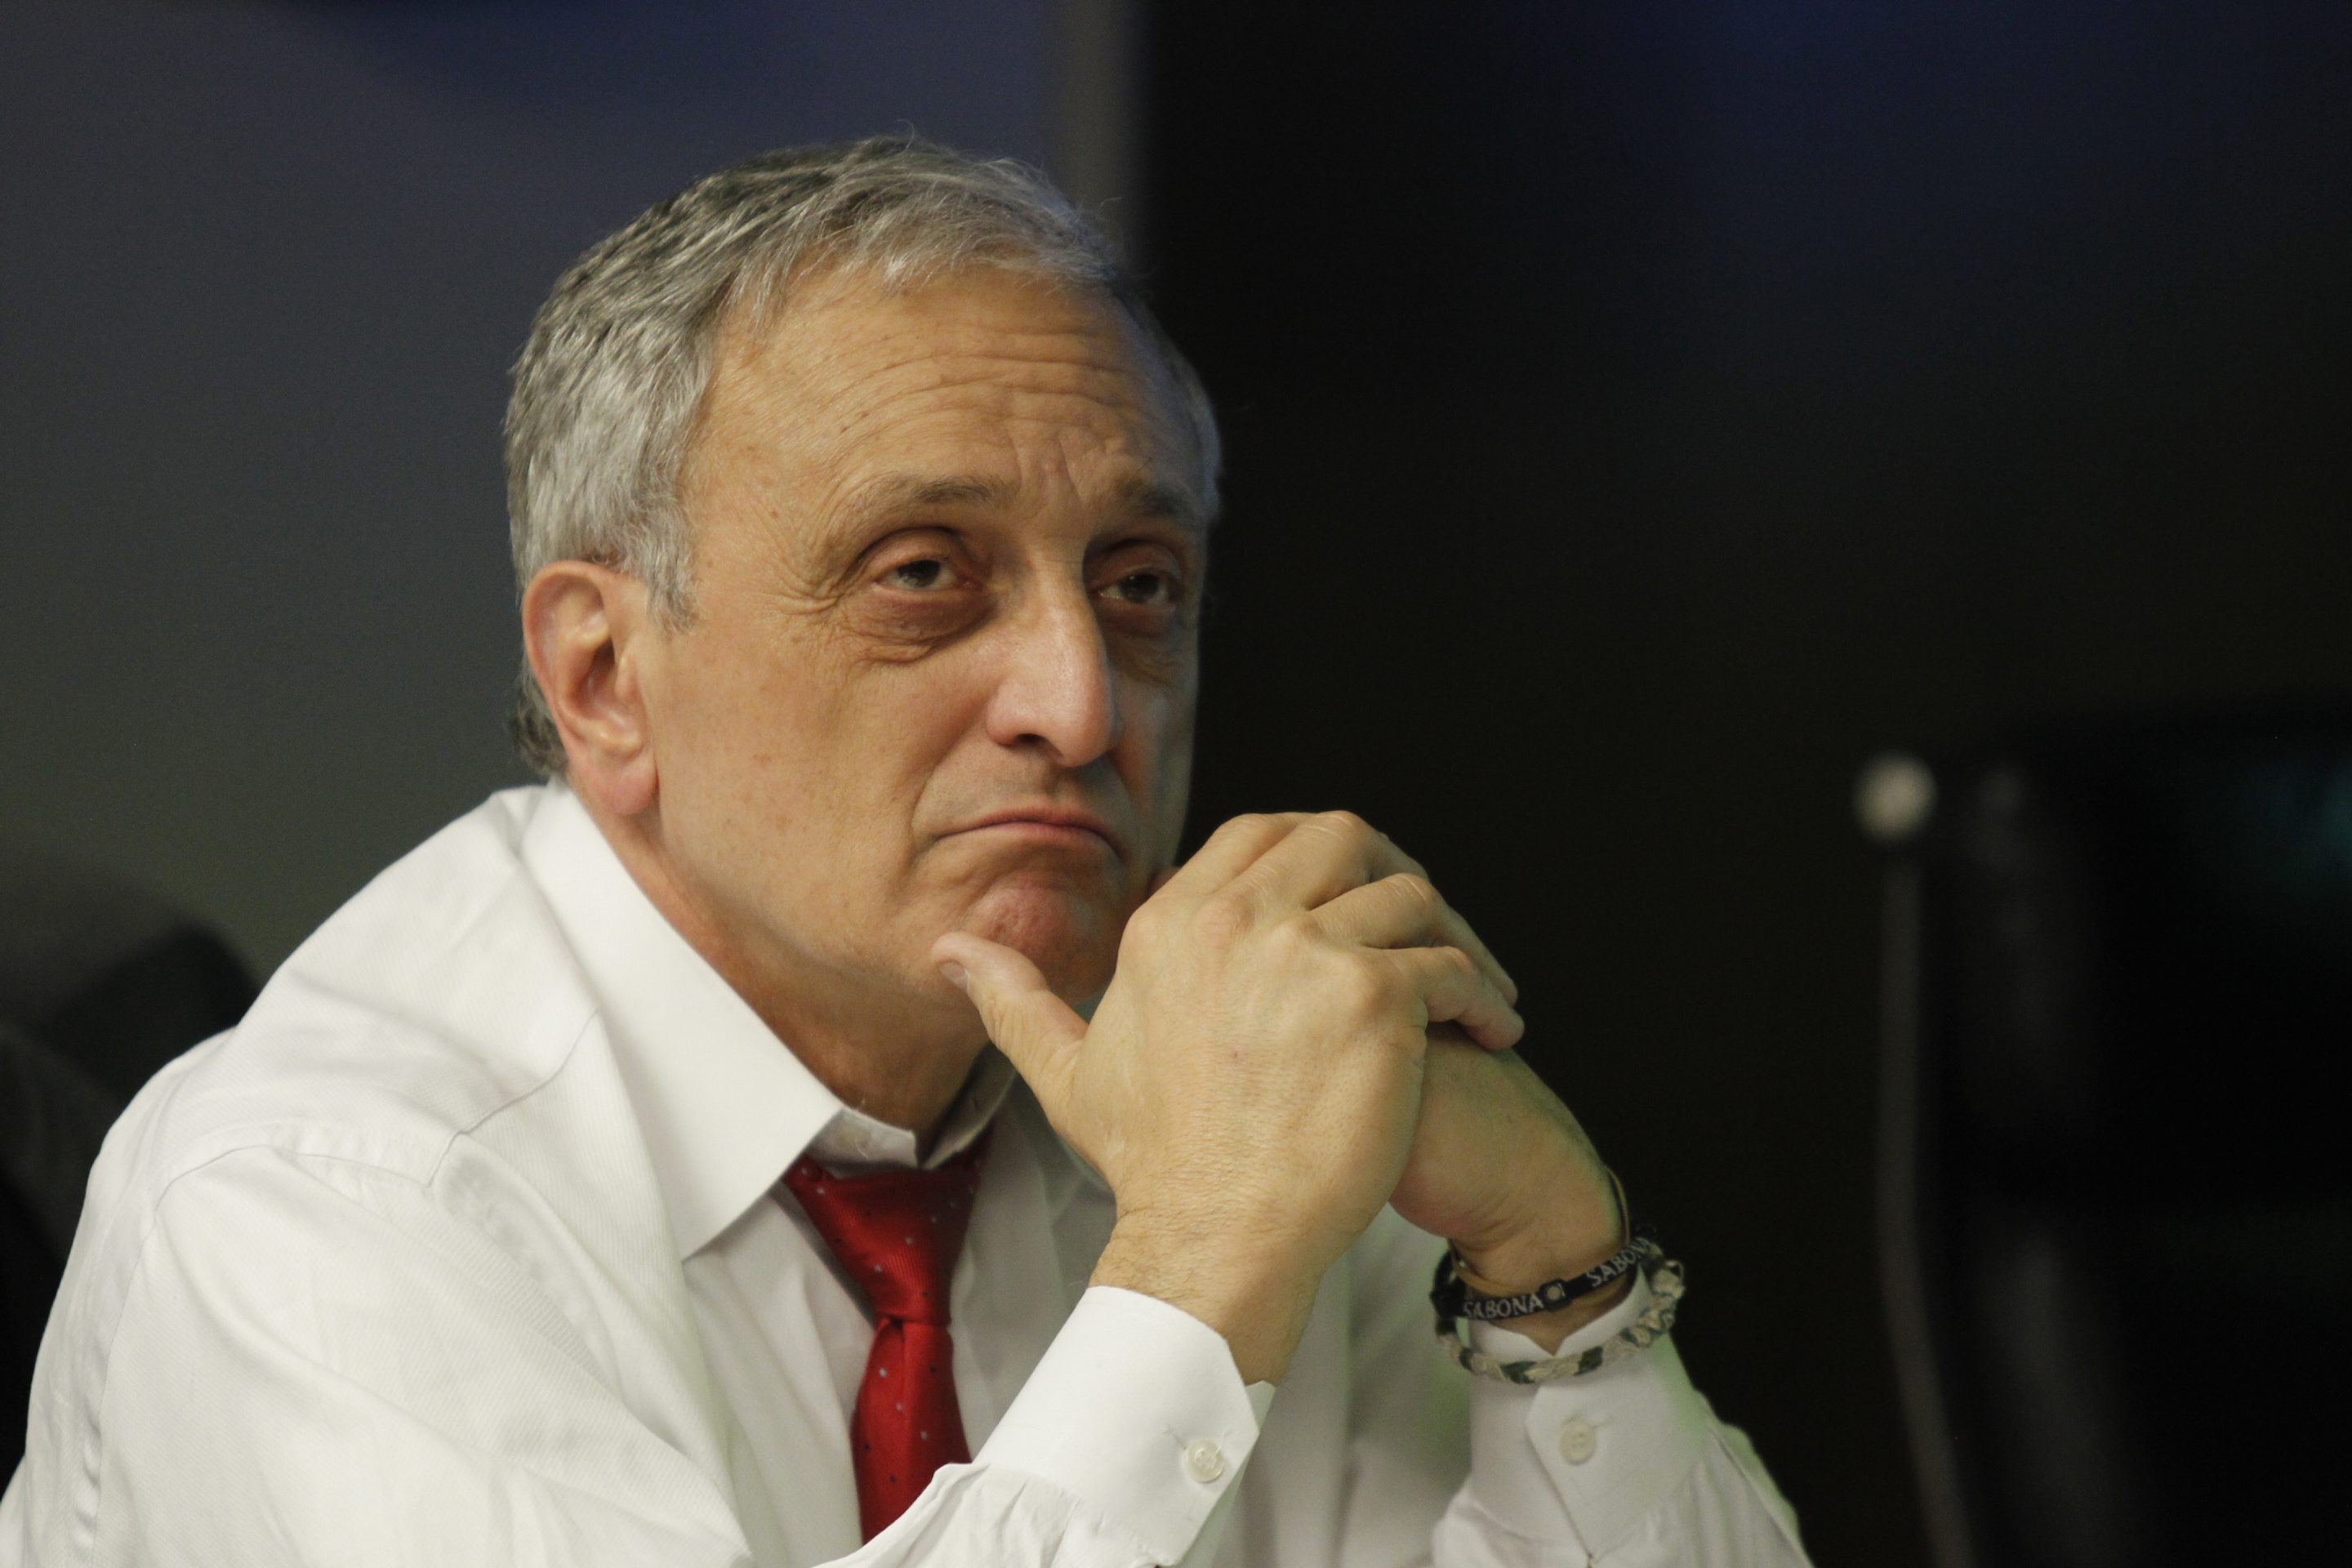 Carl Paladino's Ellicott Development was seeking $216,500 in tax breaks for a $4.9 million project to convert the old School 56 on West Delavan Avenue into 33 apartments.(Harry Scull Jr./Buffalo News file photo)